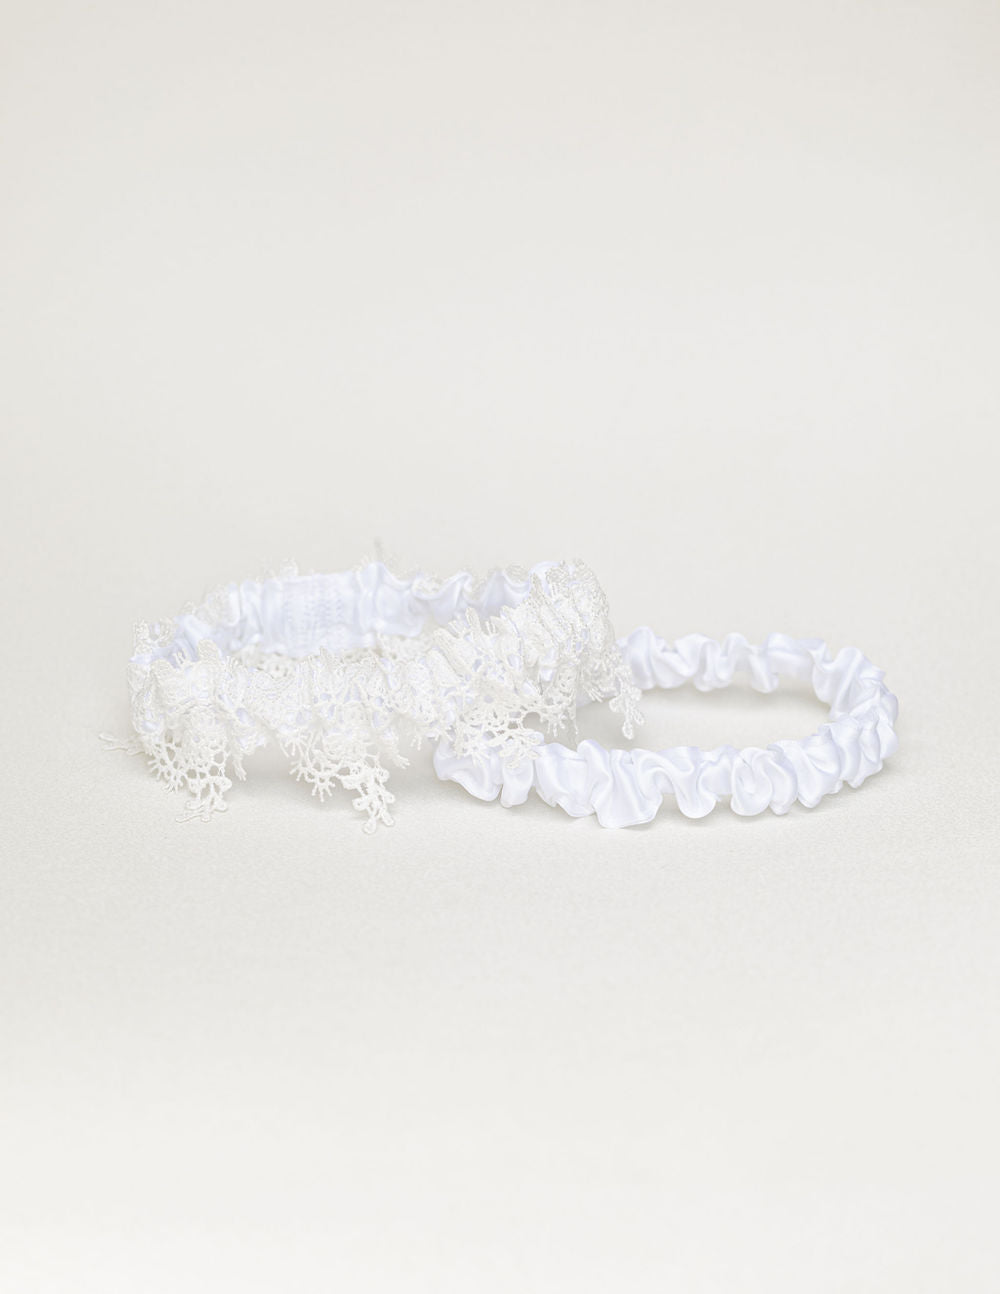 custom wedding garter set with white lace and satin from The Garter Girl